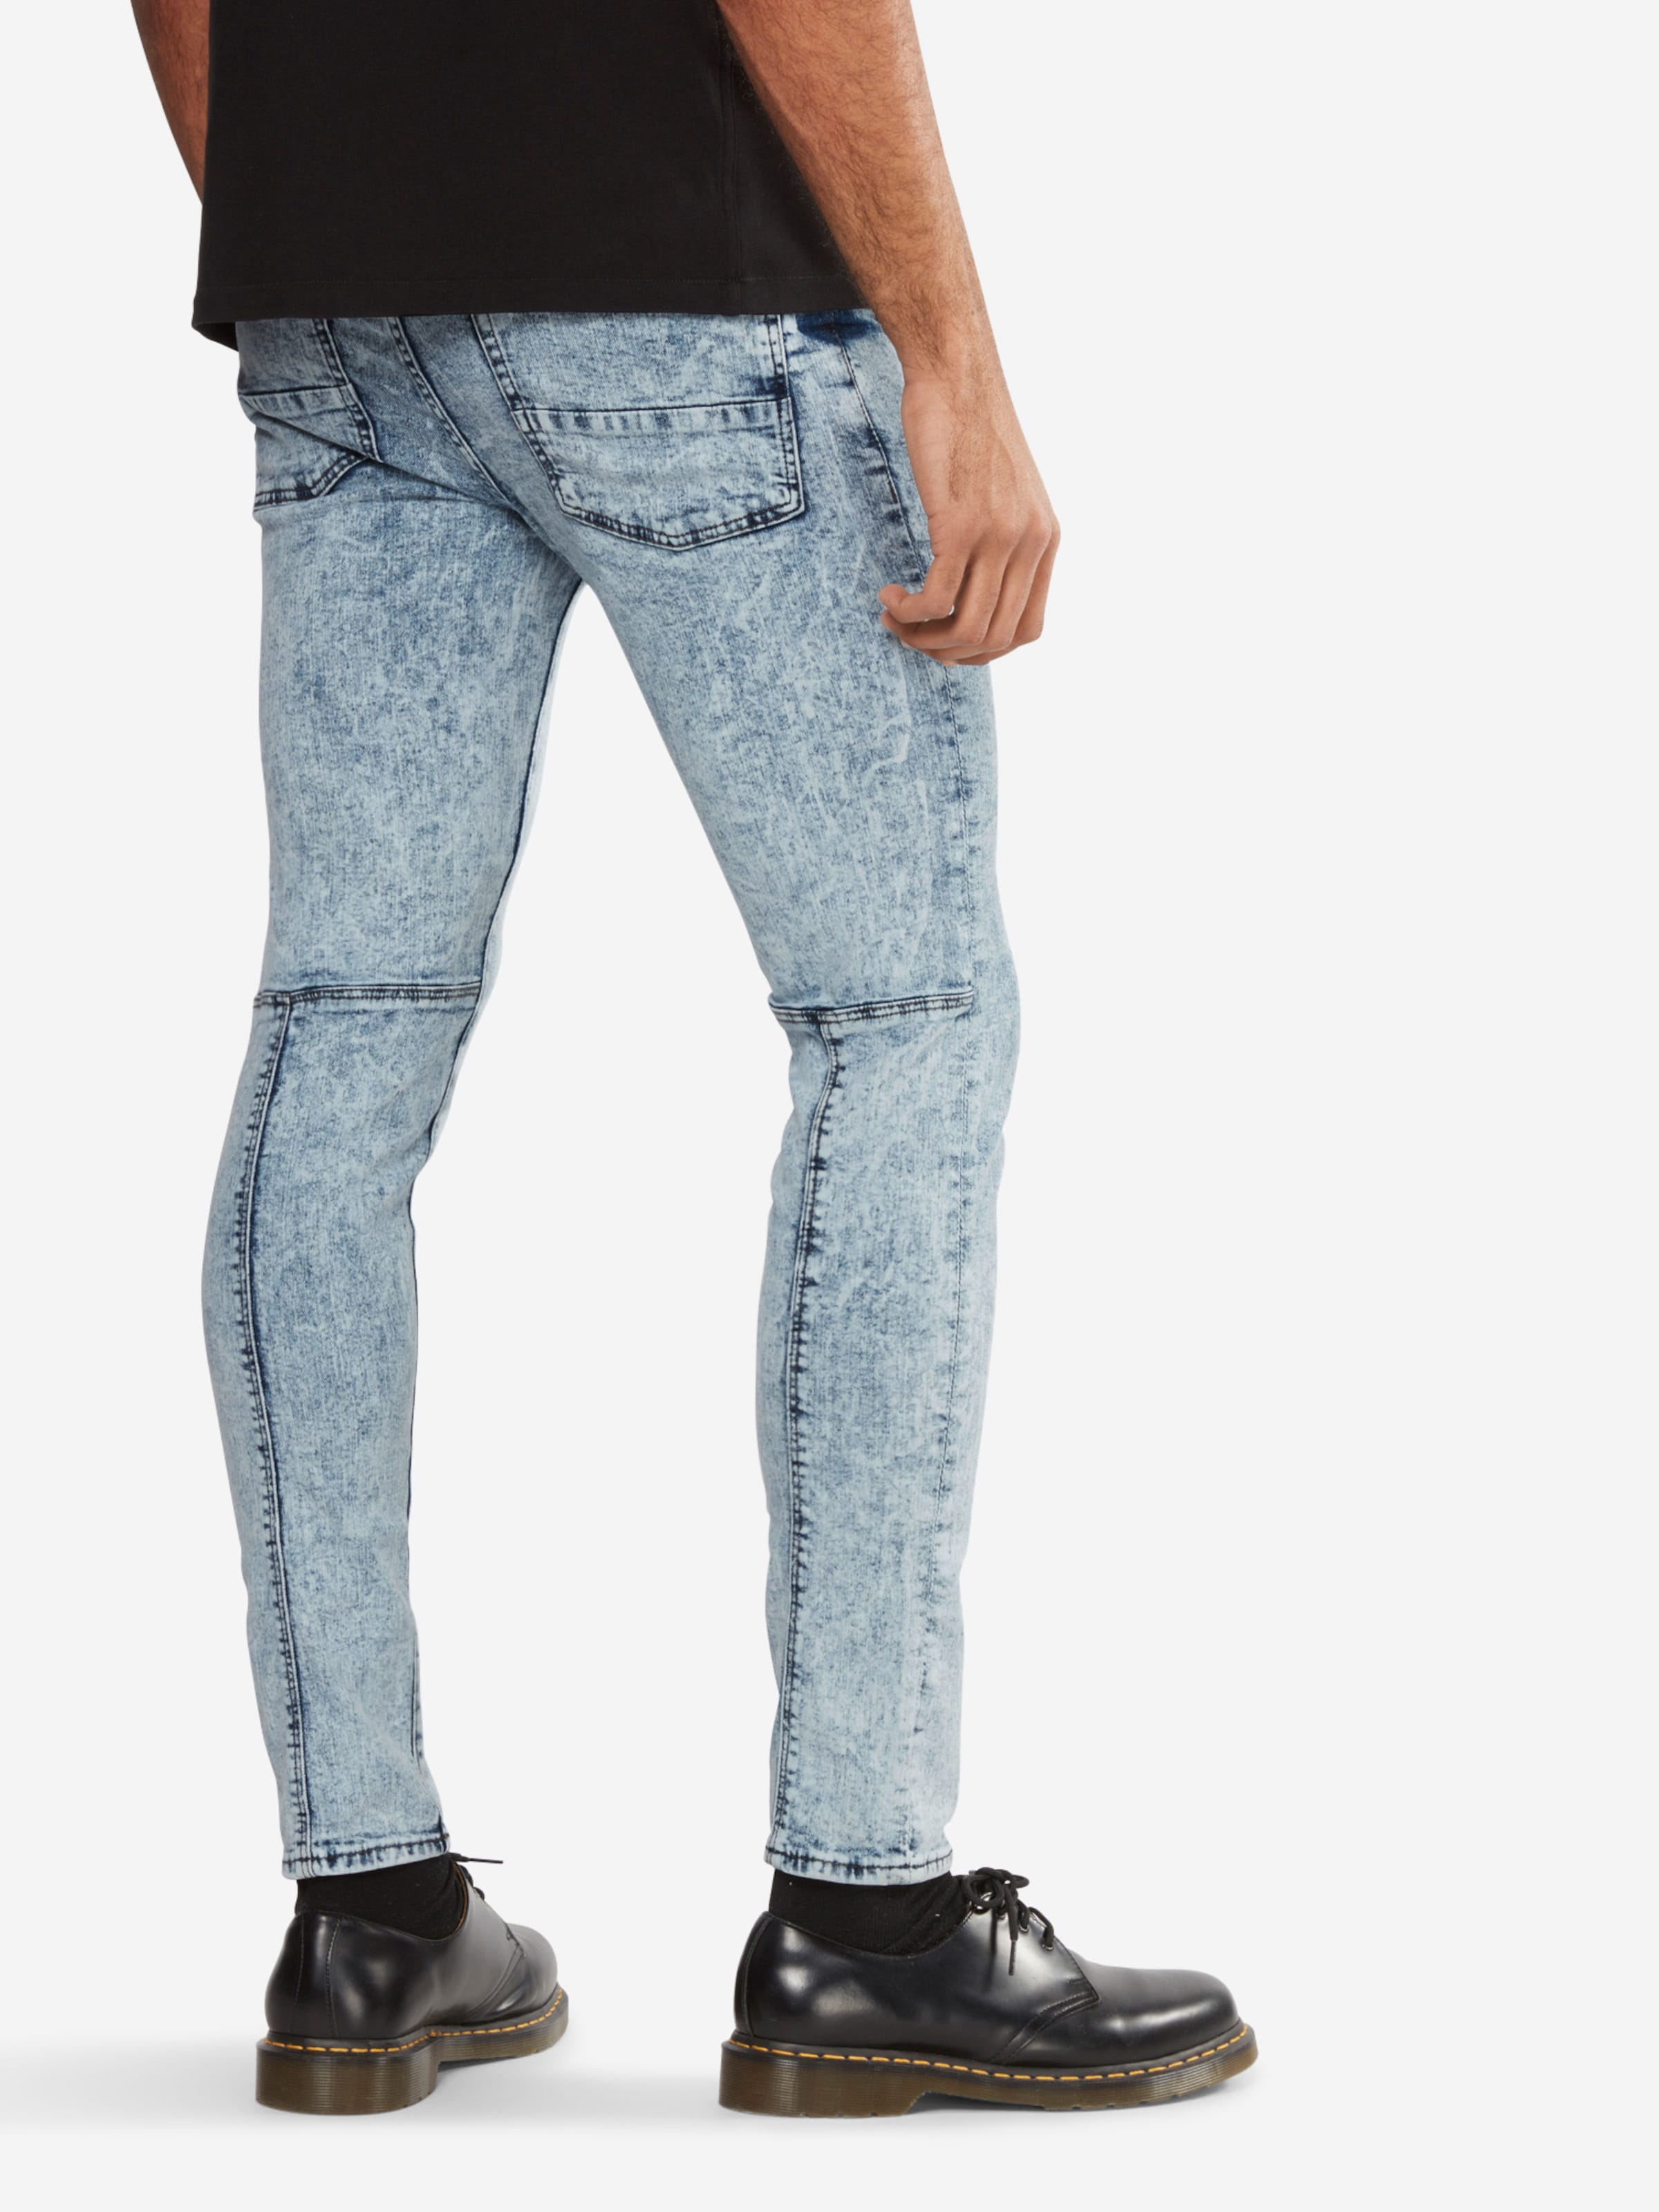 Steckdose Authentisch NEW LOOK Jeans 'BRIGHT BLUE RIP SKINNY' Beste Authentisch Gutes Angebot Vi0JFH